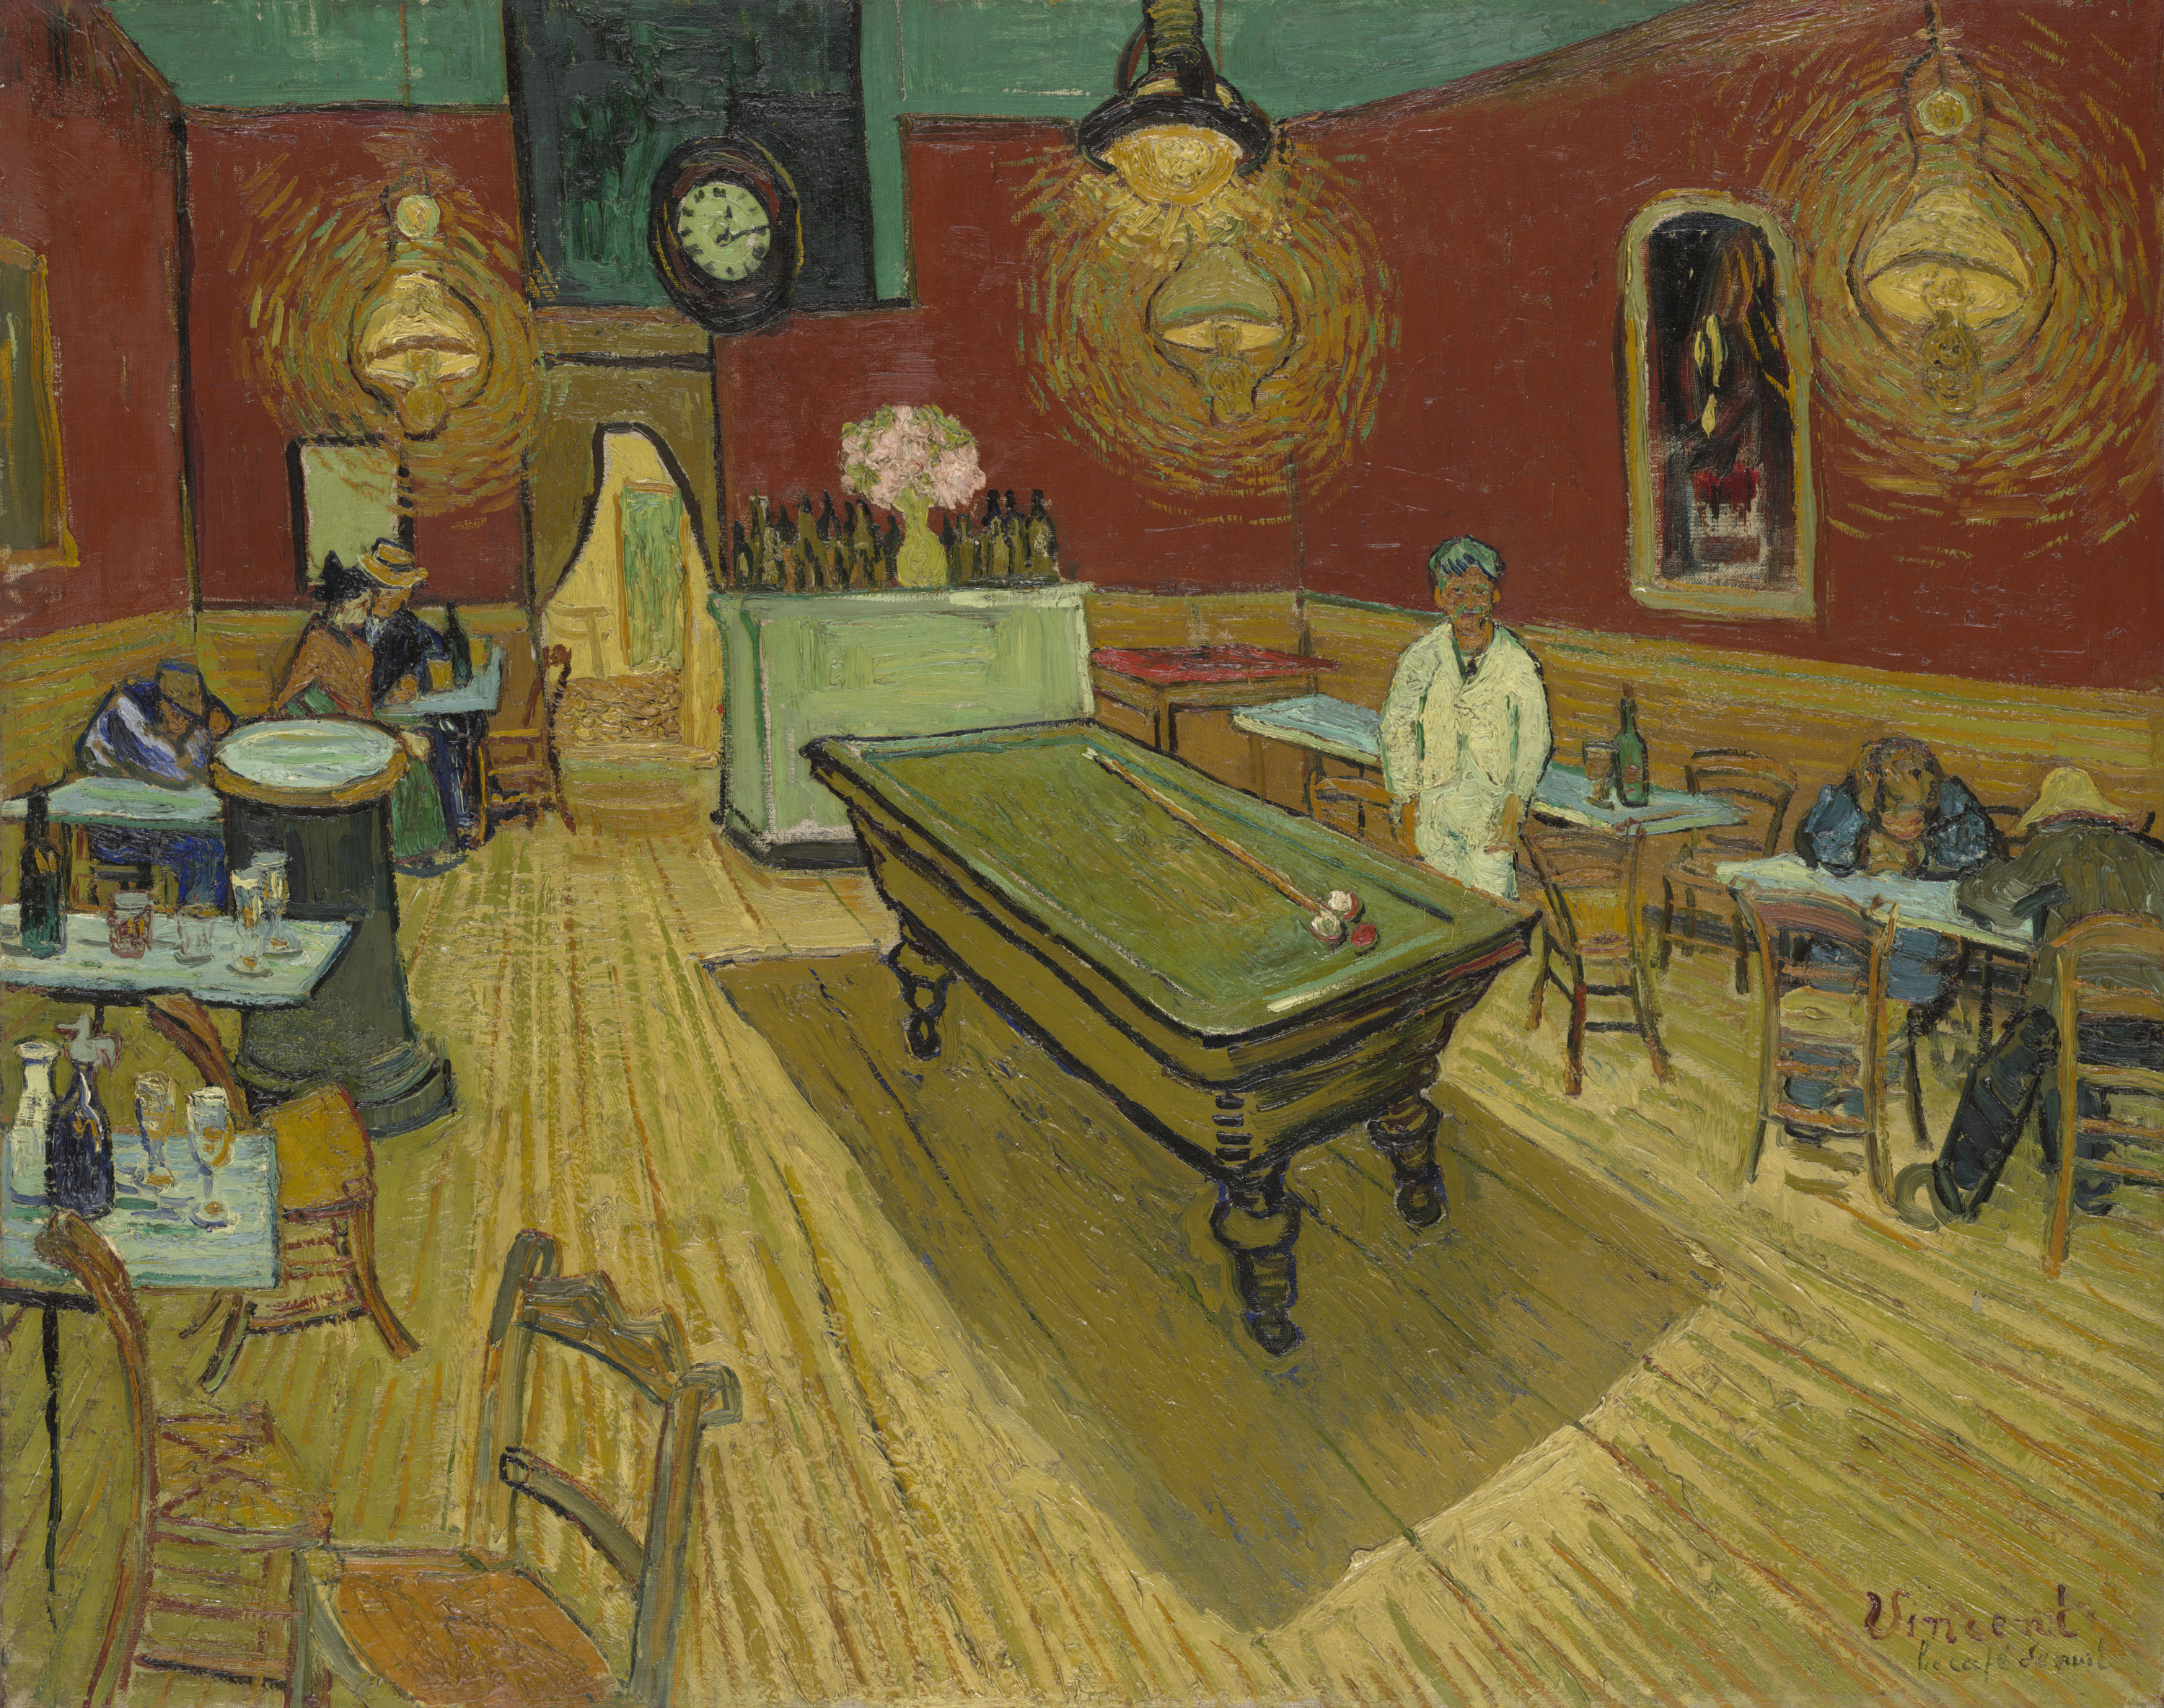 patrons are present at a sparsely attended venue with half full seating tables along the right and left walls, while the back wall has a taller piece of furniture with bottles atop it next to a doorway and in the center of the room is a large piece of furniture that may be a billiards table. Bright lanterns hang from the ceiling and one person is standing.